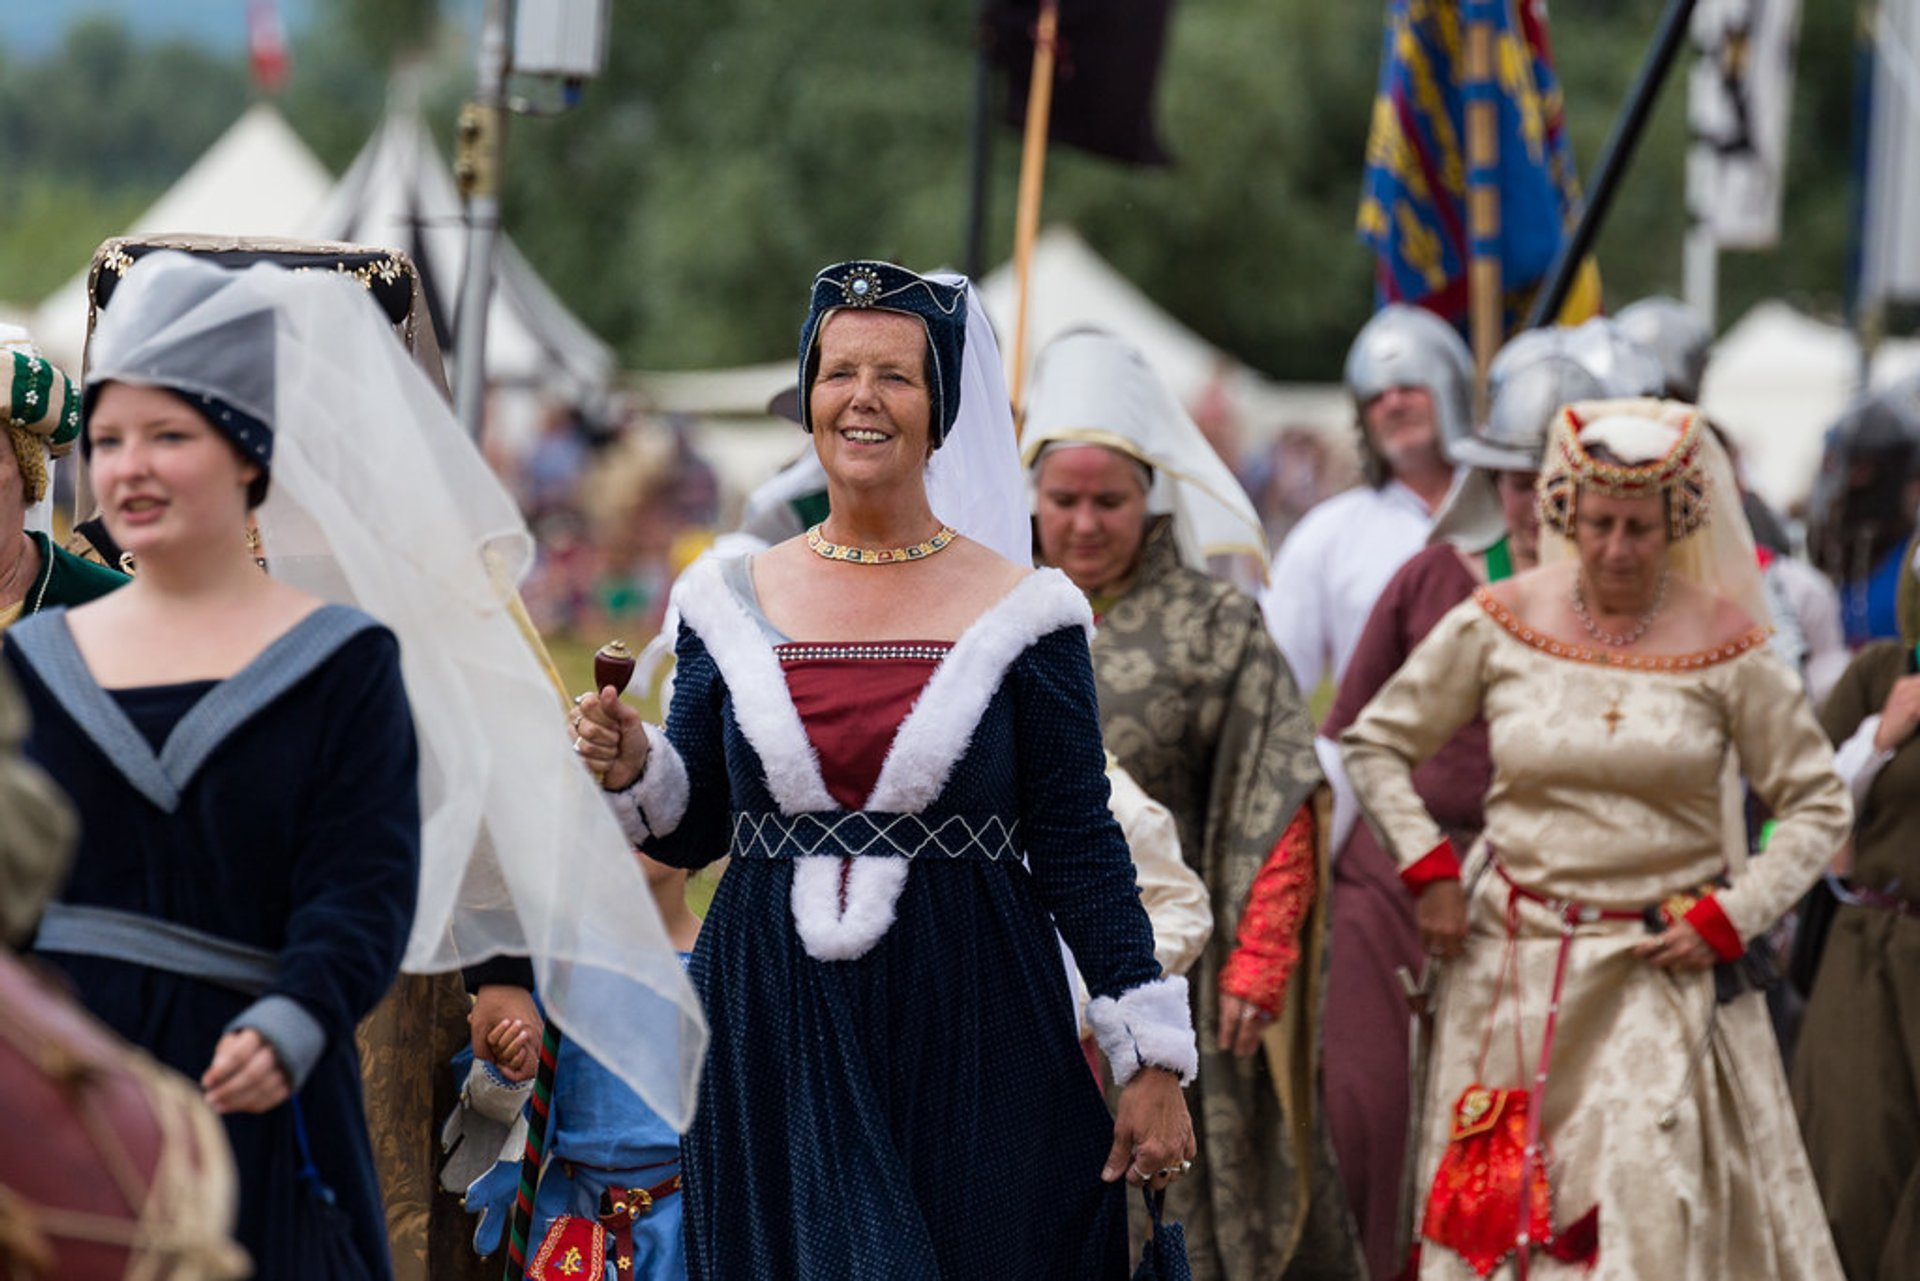 Best time for Tewkesbury Medieval Festival in England 2019